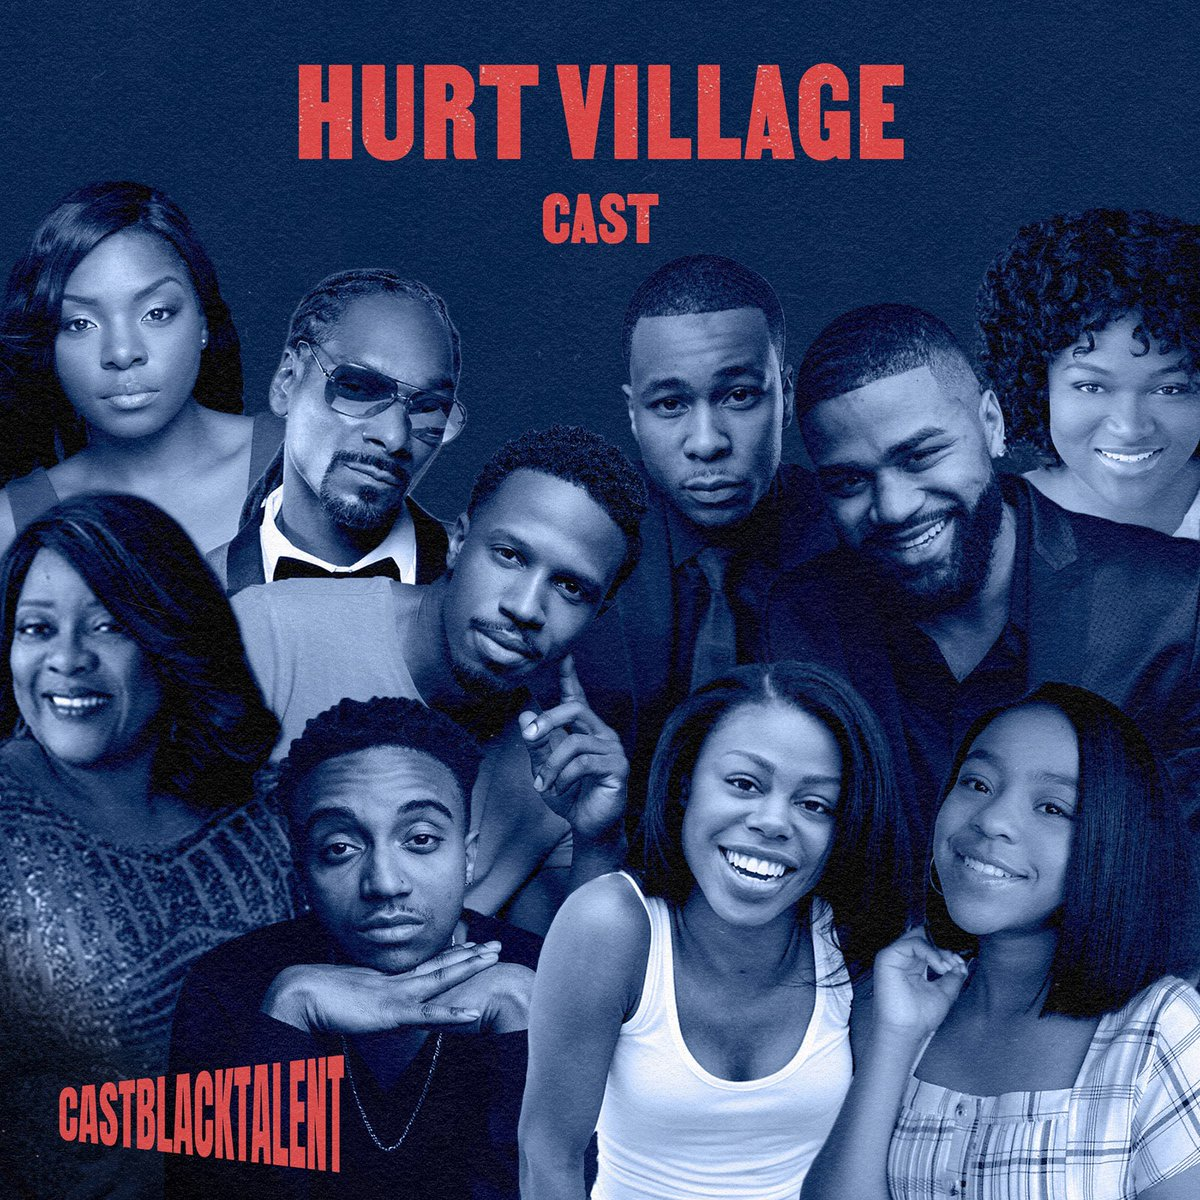 Catch this amazing cast—TODAY thru Dec 8th & Dec 11th—tearin' up that virtual stage to benefit @theactorsfund. Tix at . Honored to have my play #HurtVillage kick off the @castblacktalent virtual reading series! #castblacktalent